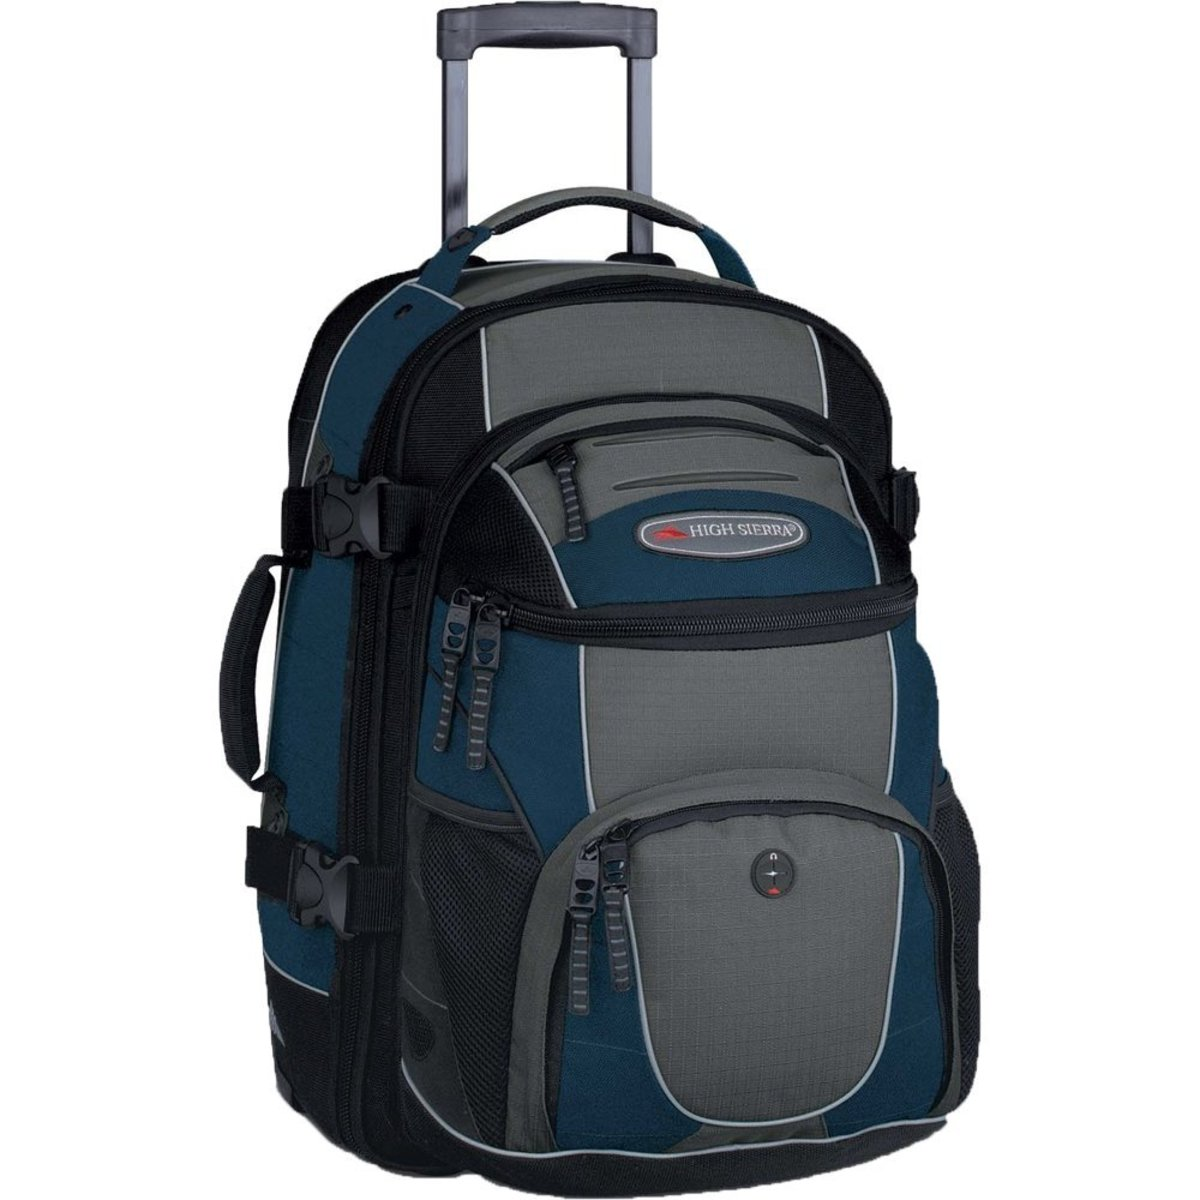 World Travel Luggage - Buying A Travel Bag With Wheels To Travel The World